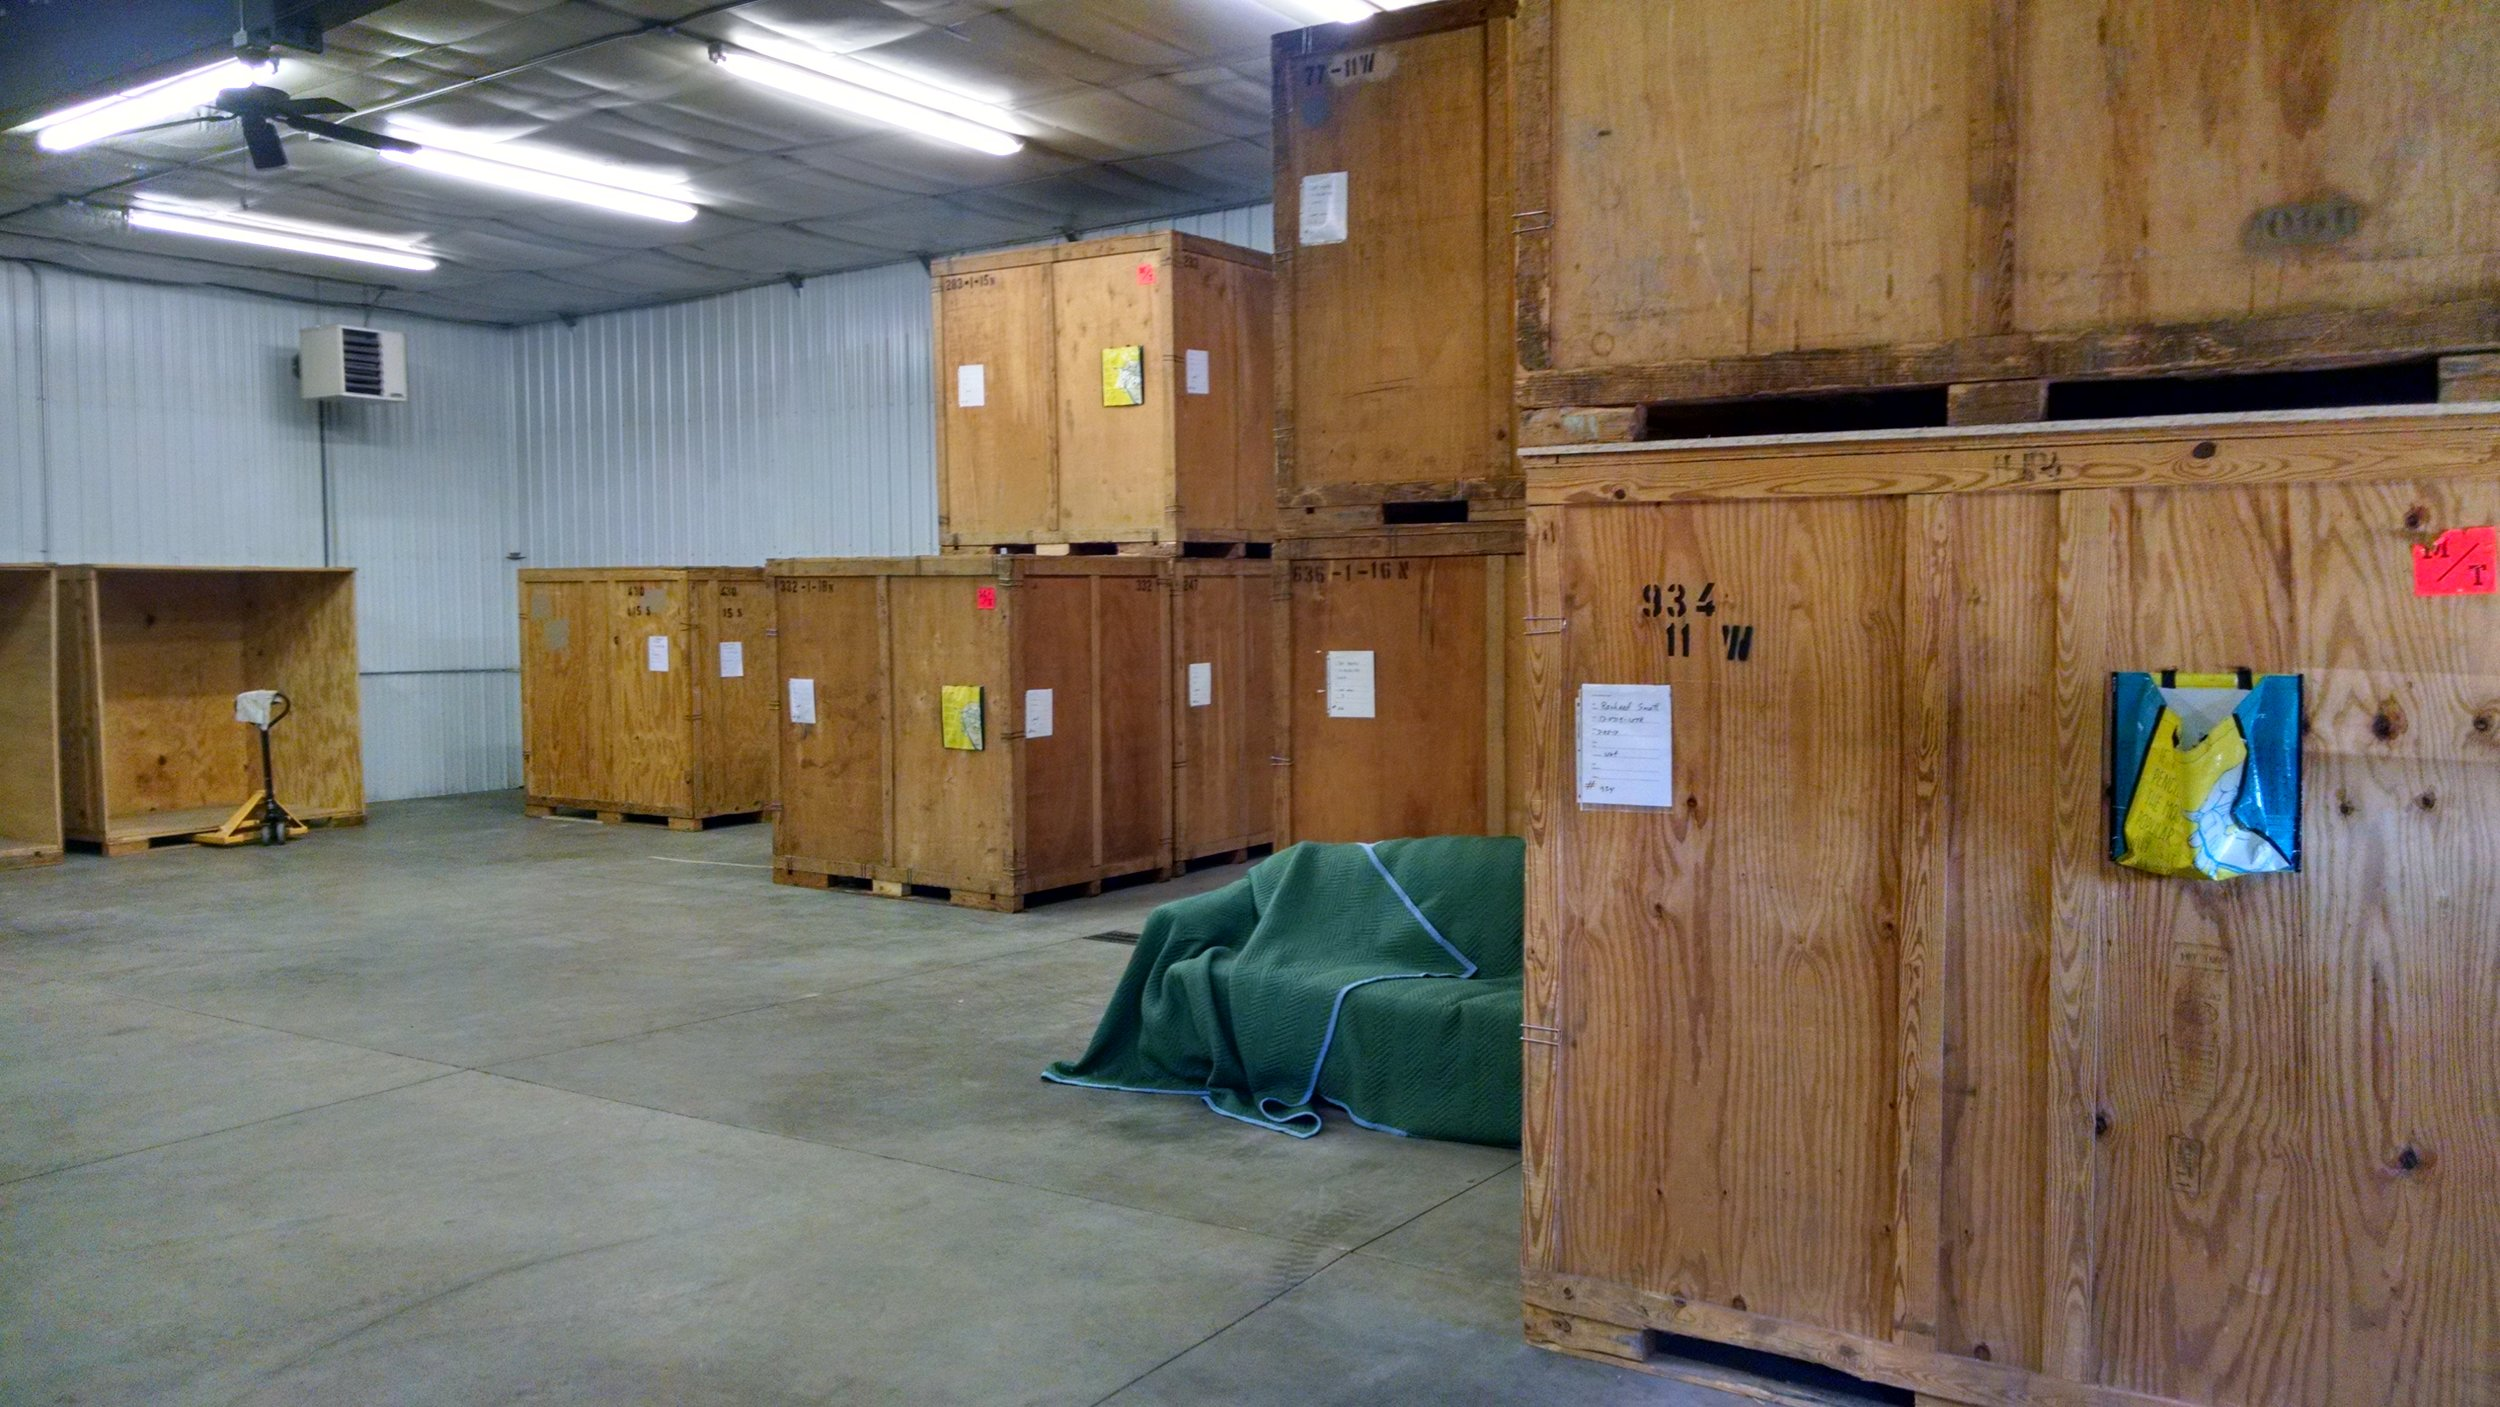 Contents crates and furniture in storage